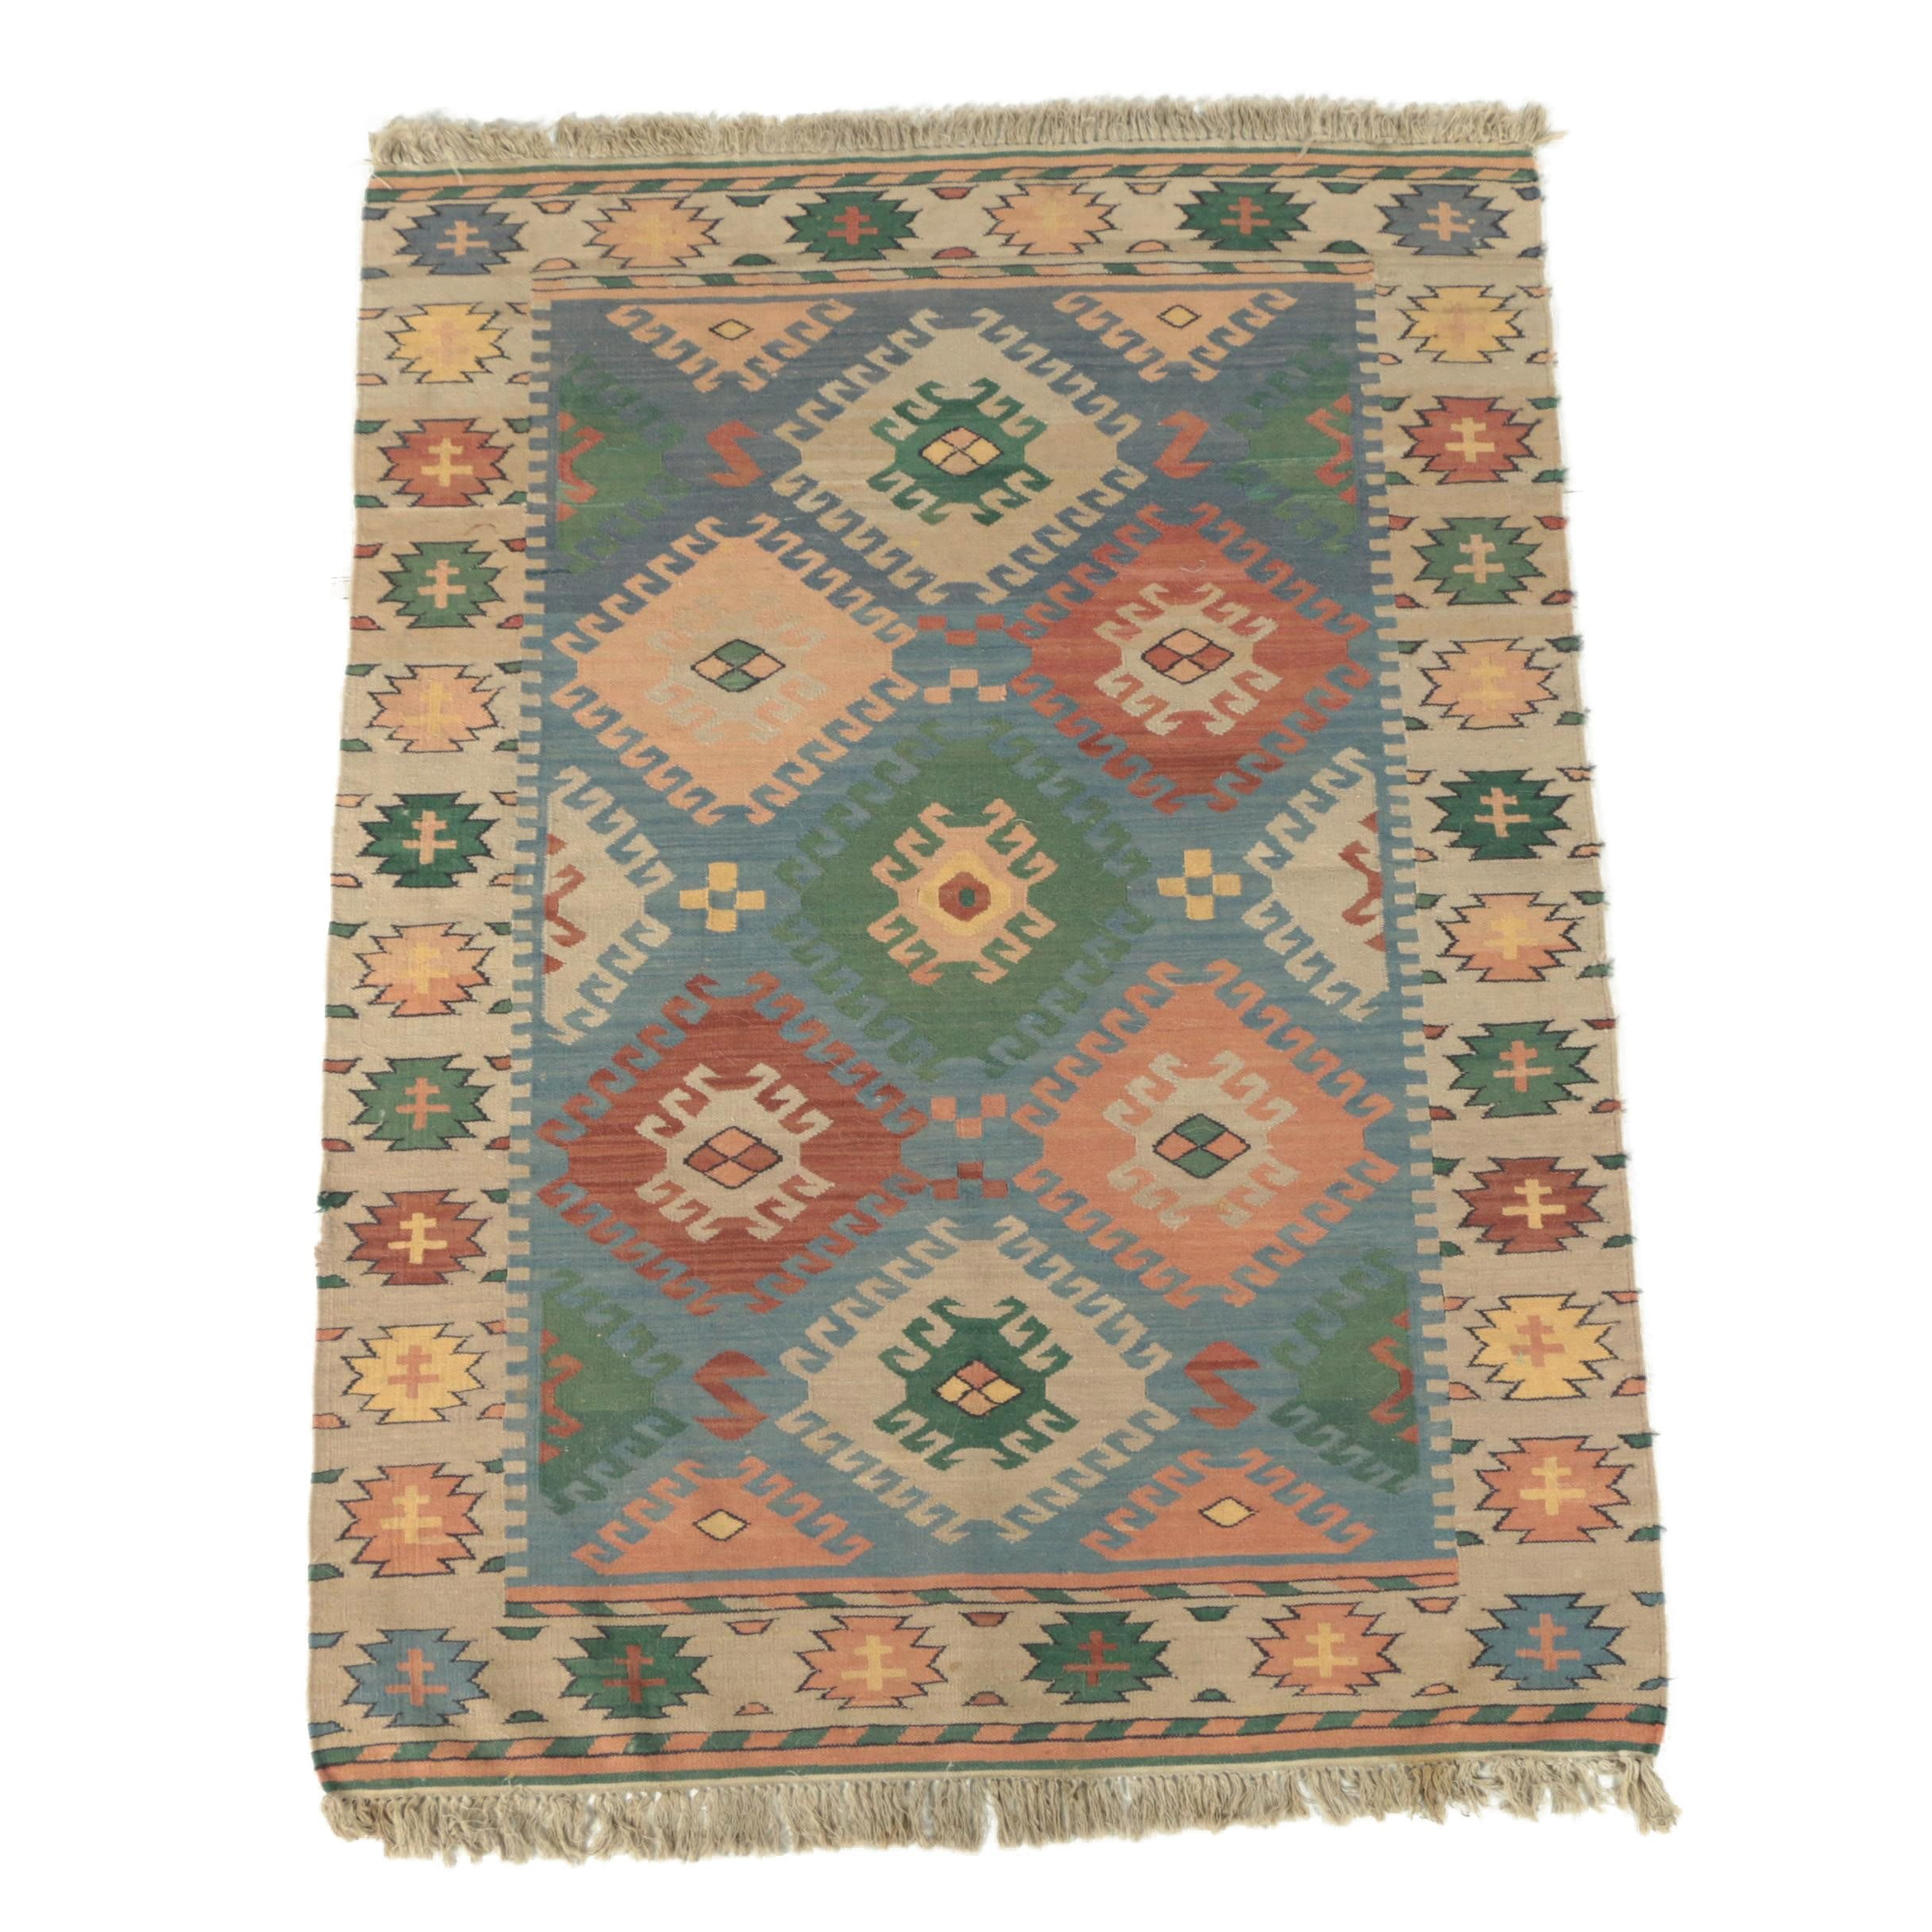 Handwoven Turkish Wool Slitweave Kilim